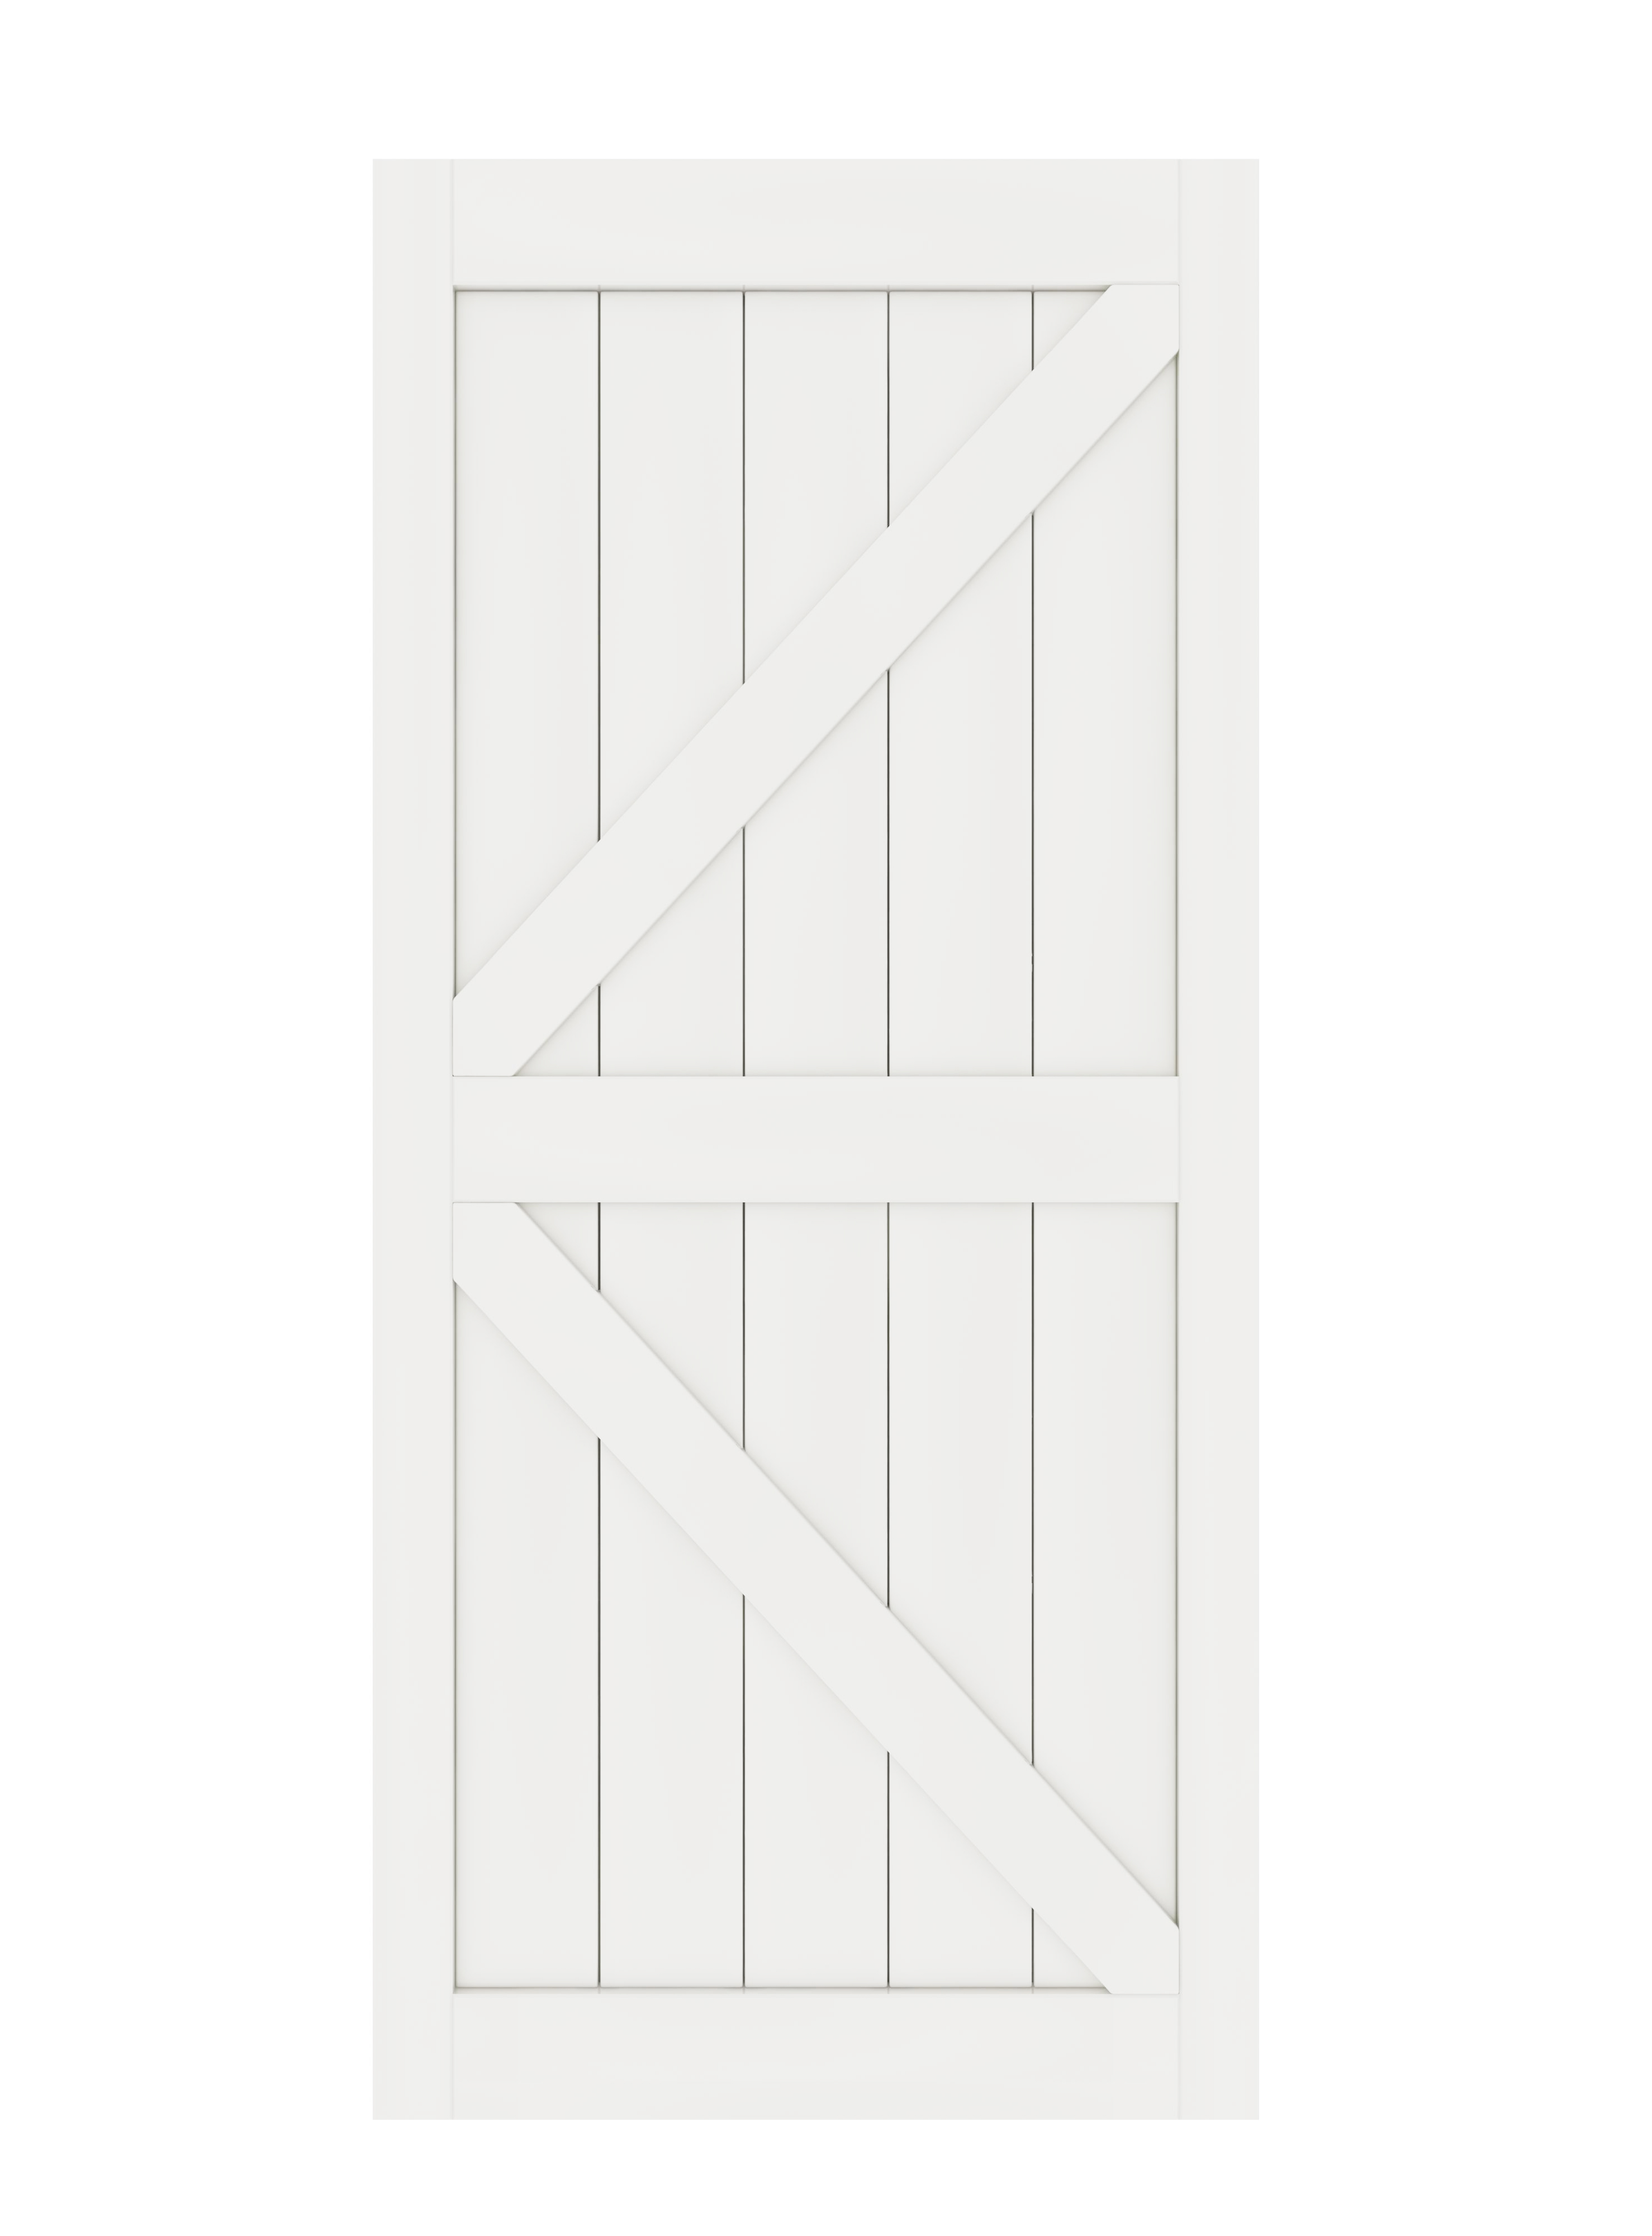 DIYHD K Shaped Solid Core Barn Slab MDF Primed Interior Door Panel(Disassembled), White-36X84, White-38X84